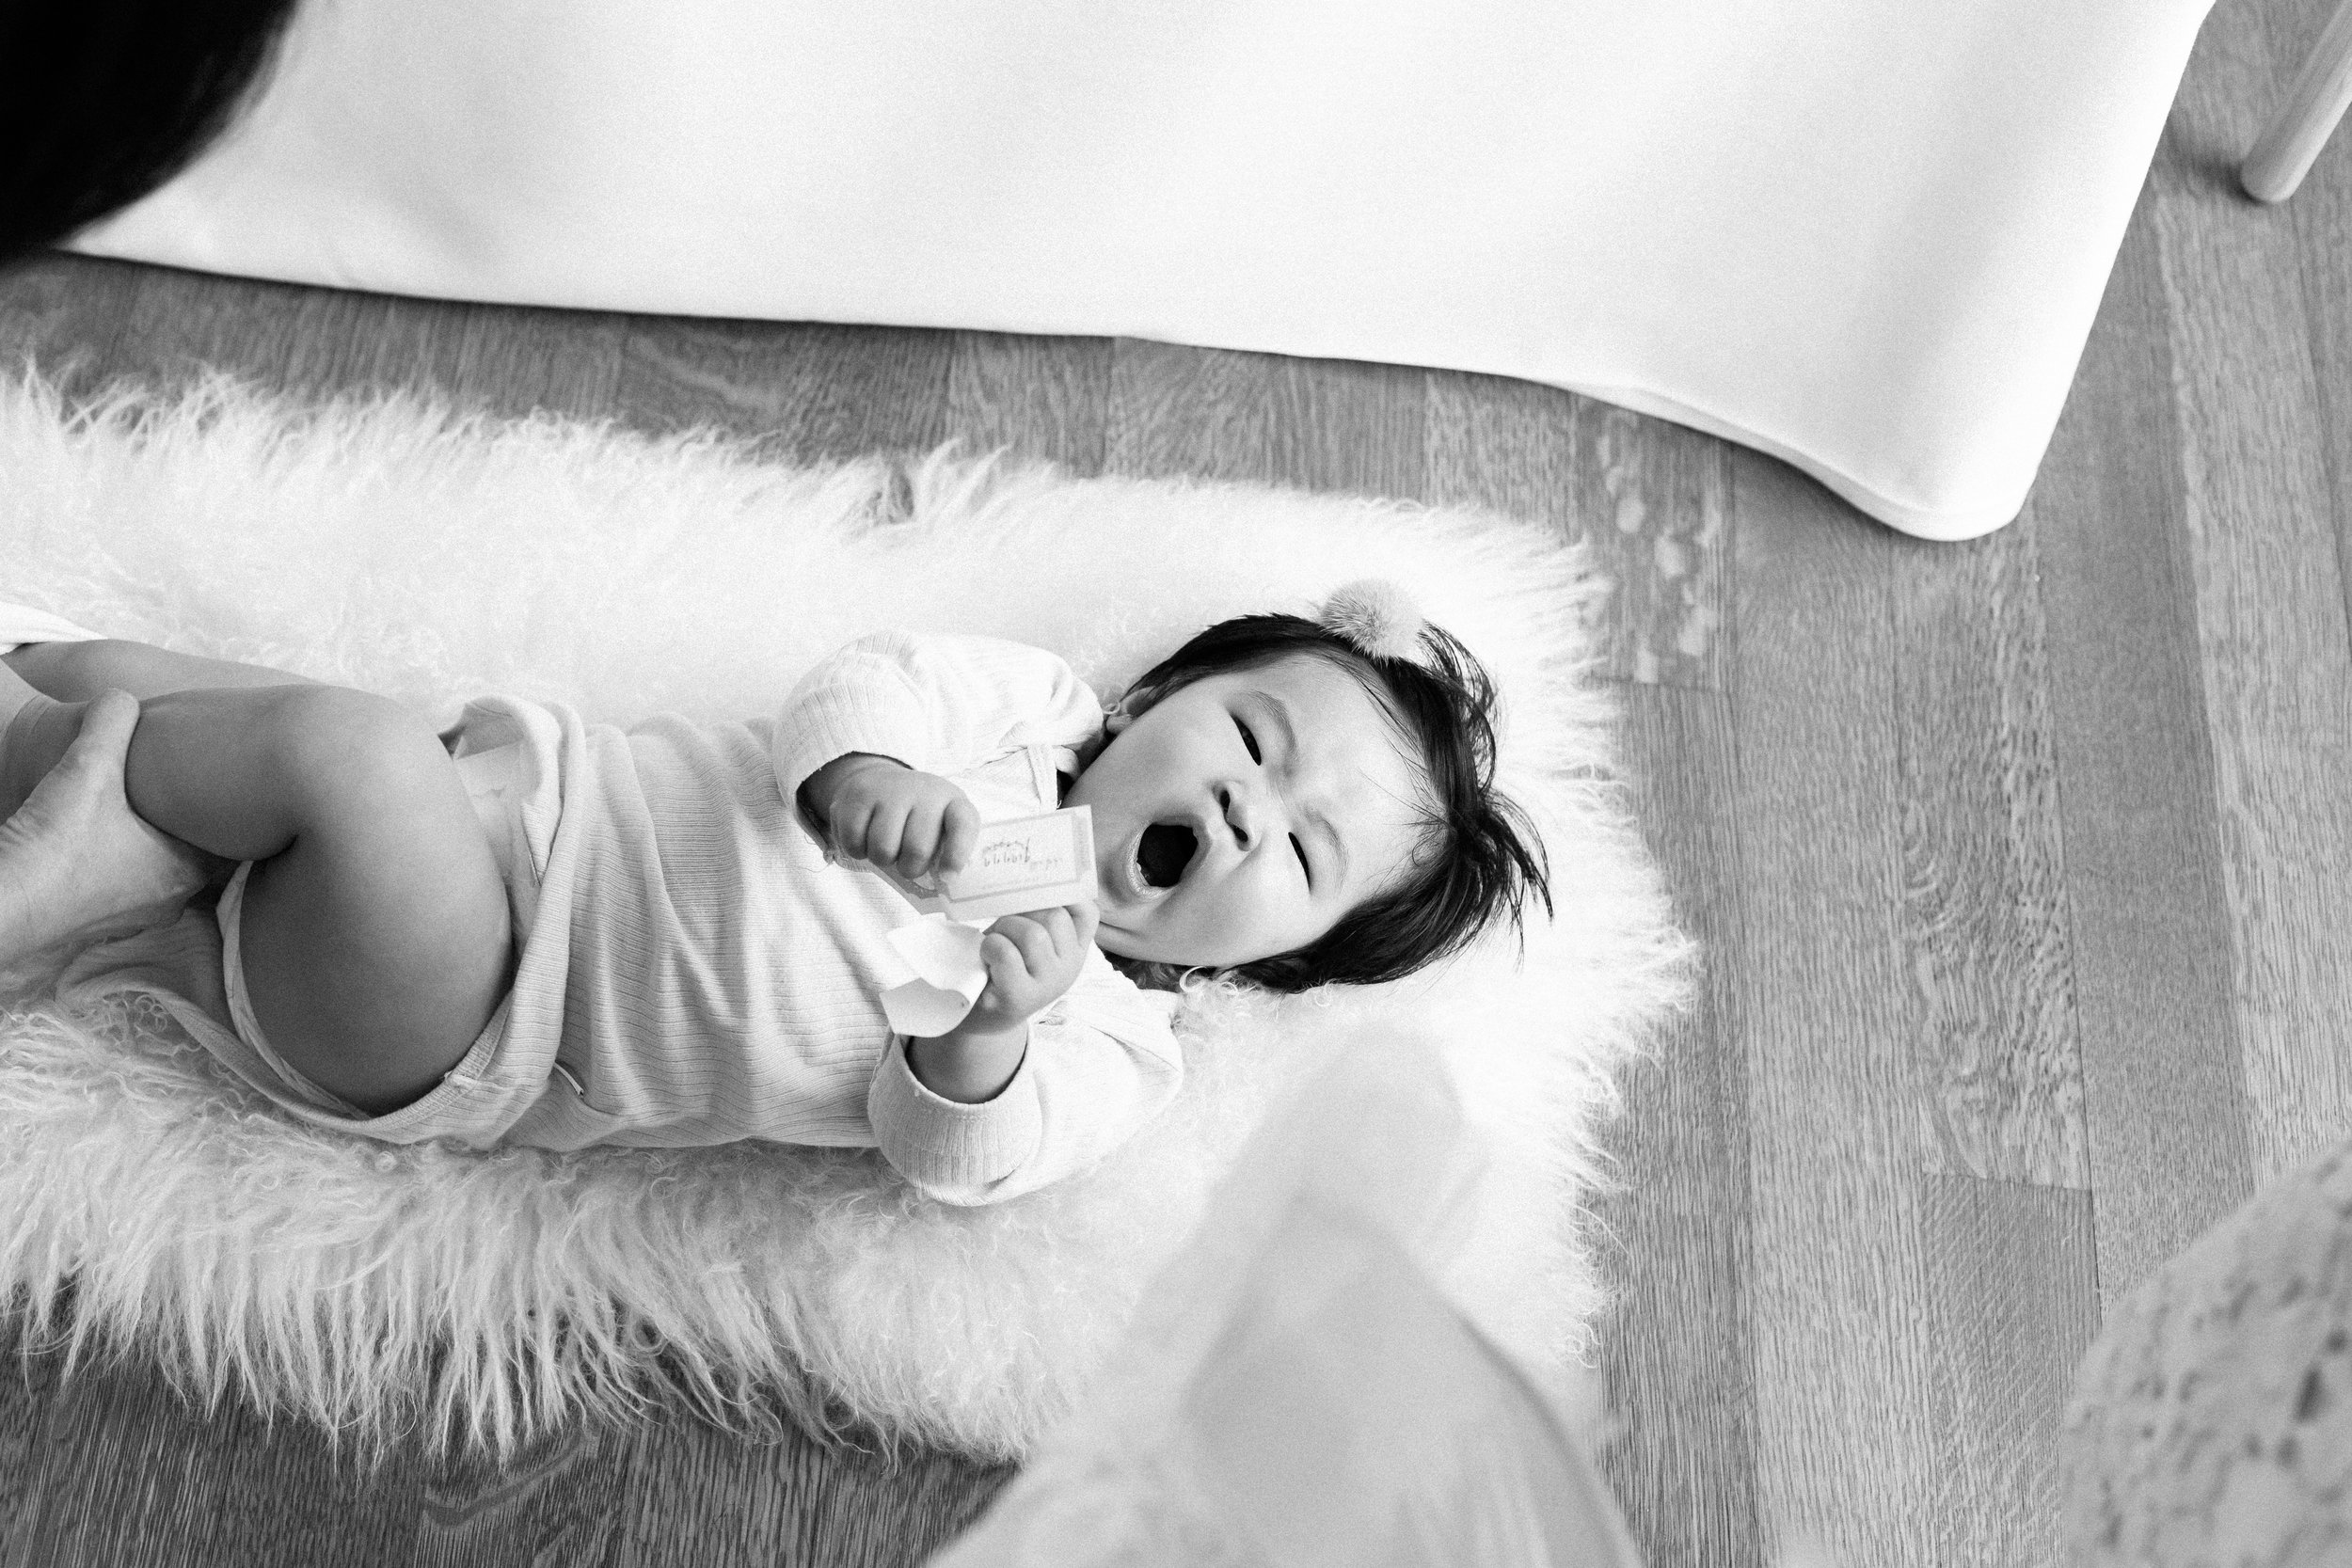 lissie_loomis_nyc_event_baby_photographer9.JPG